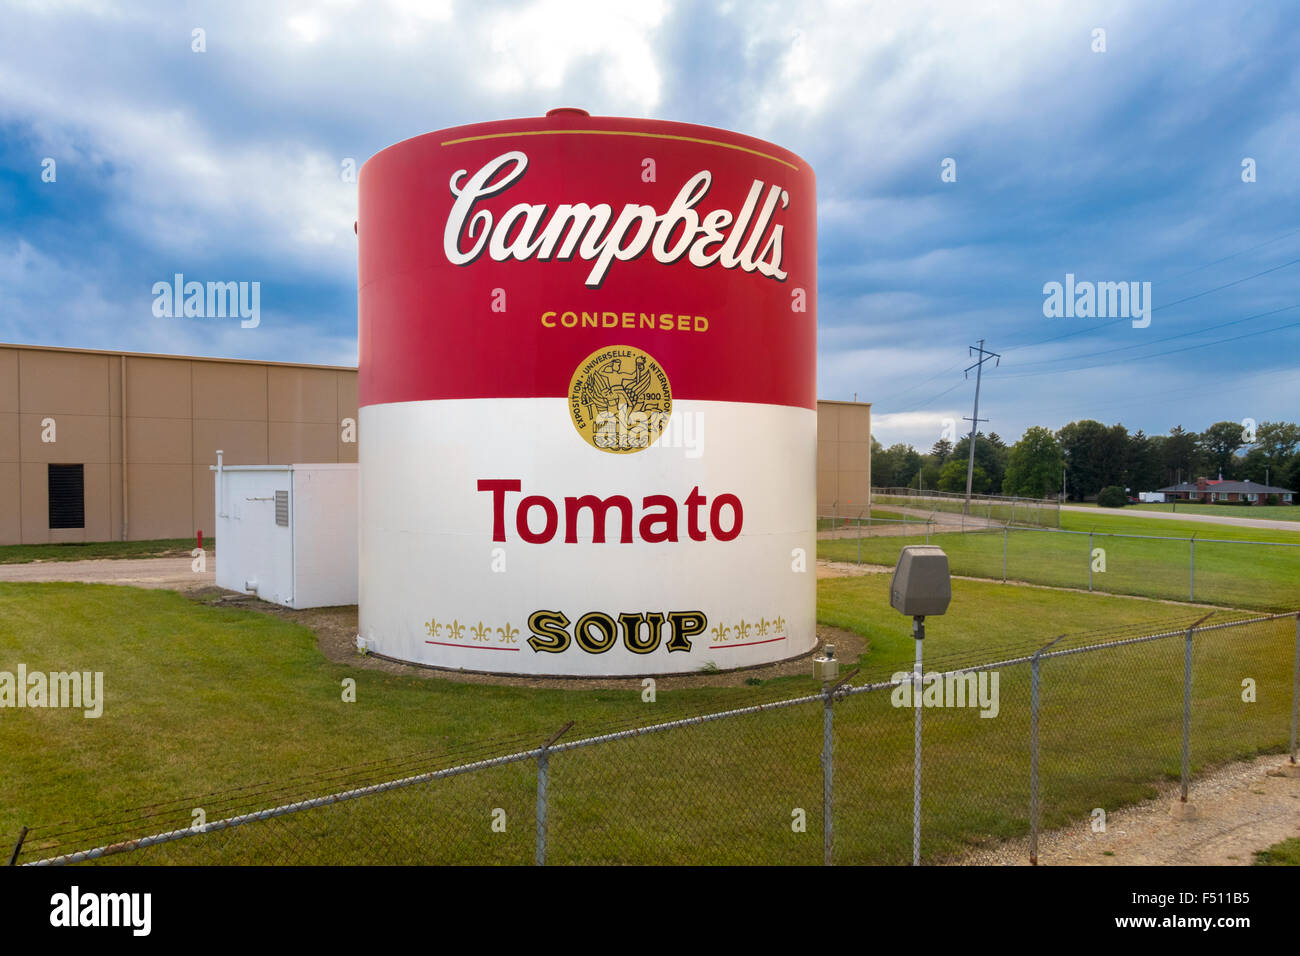 http://c7.alamy.com/comp/F511B5/giant-tomato-soup-can-outside-campbells-soup-supply-co-factory-in-F511B5.jpg